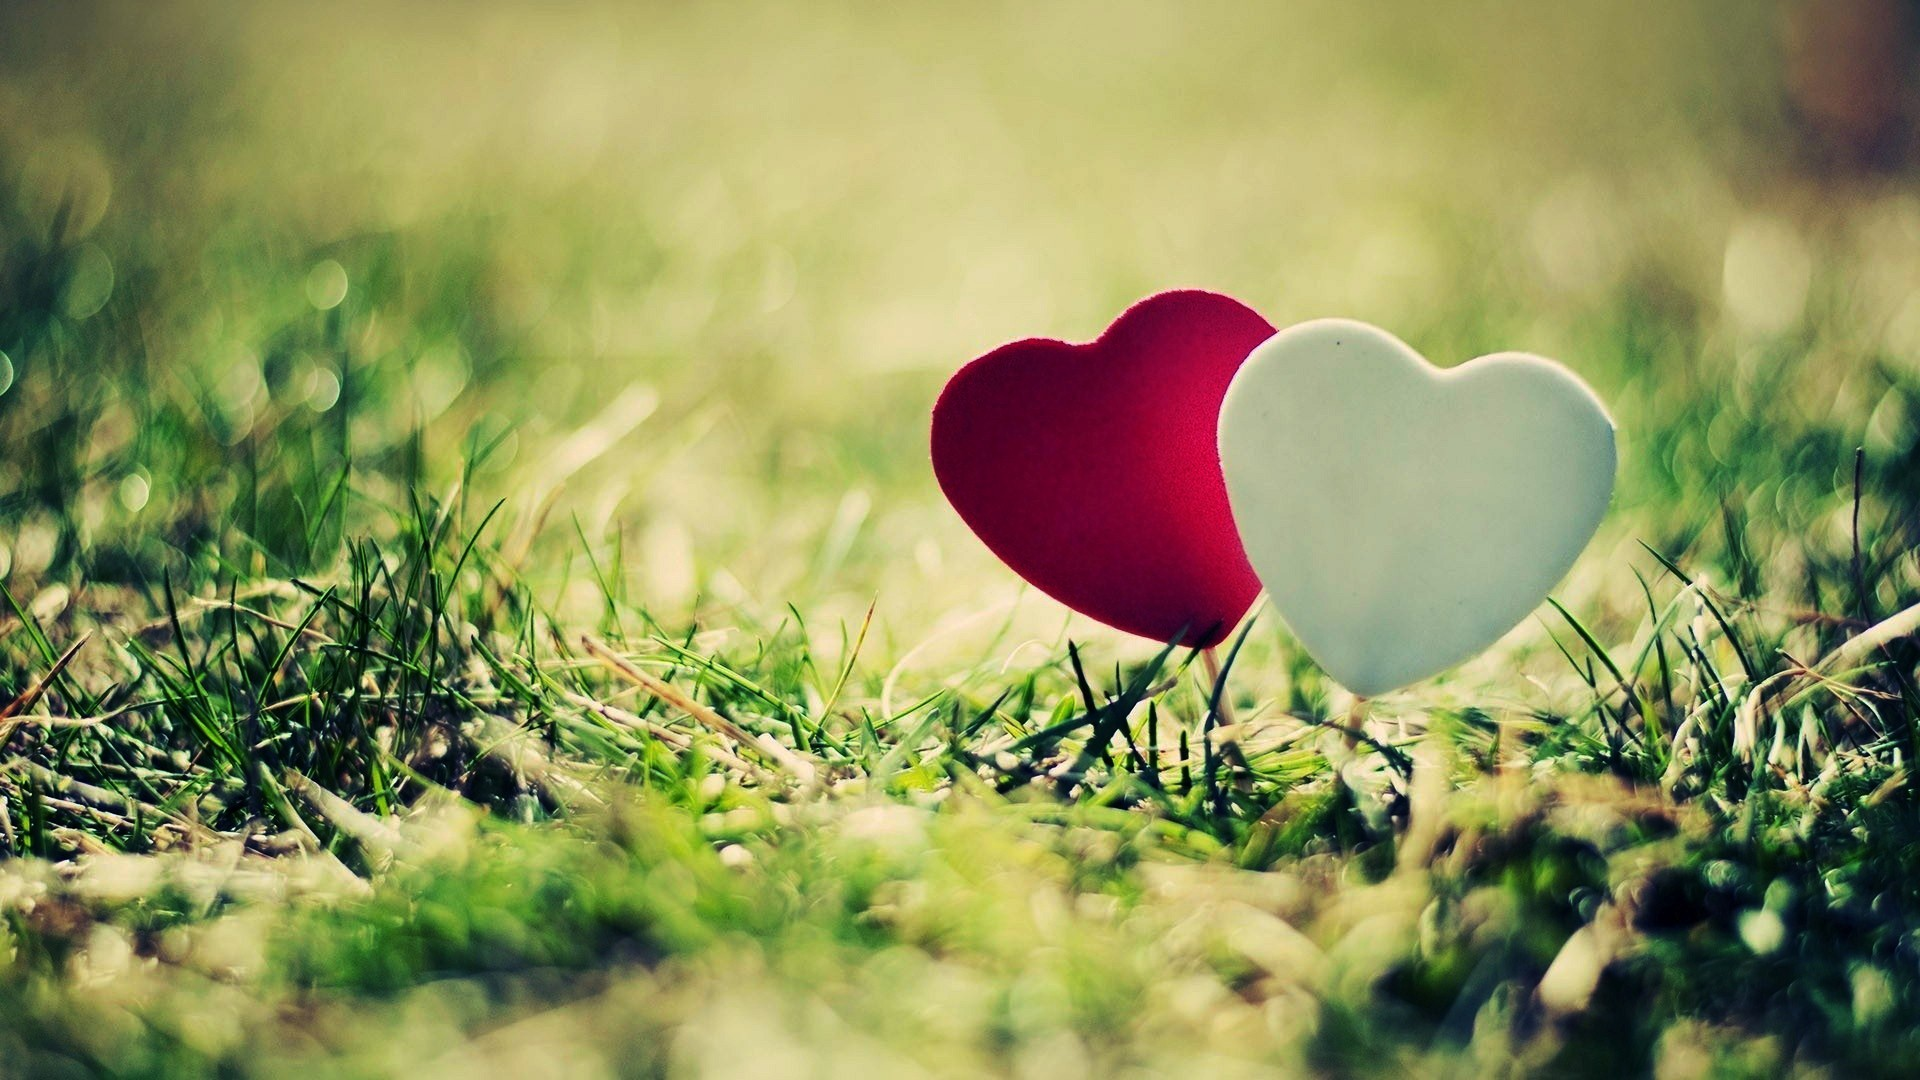 HD Wallpapers On Love